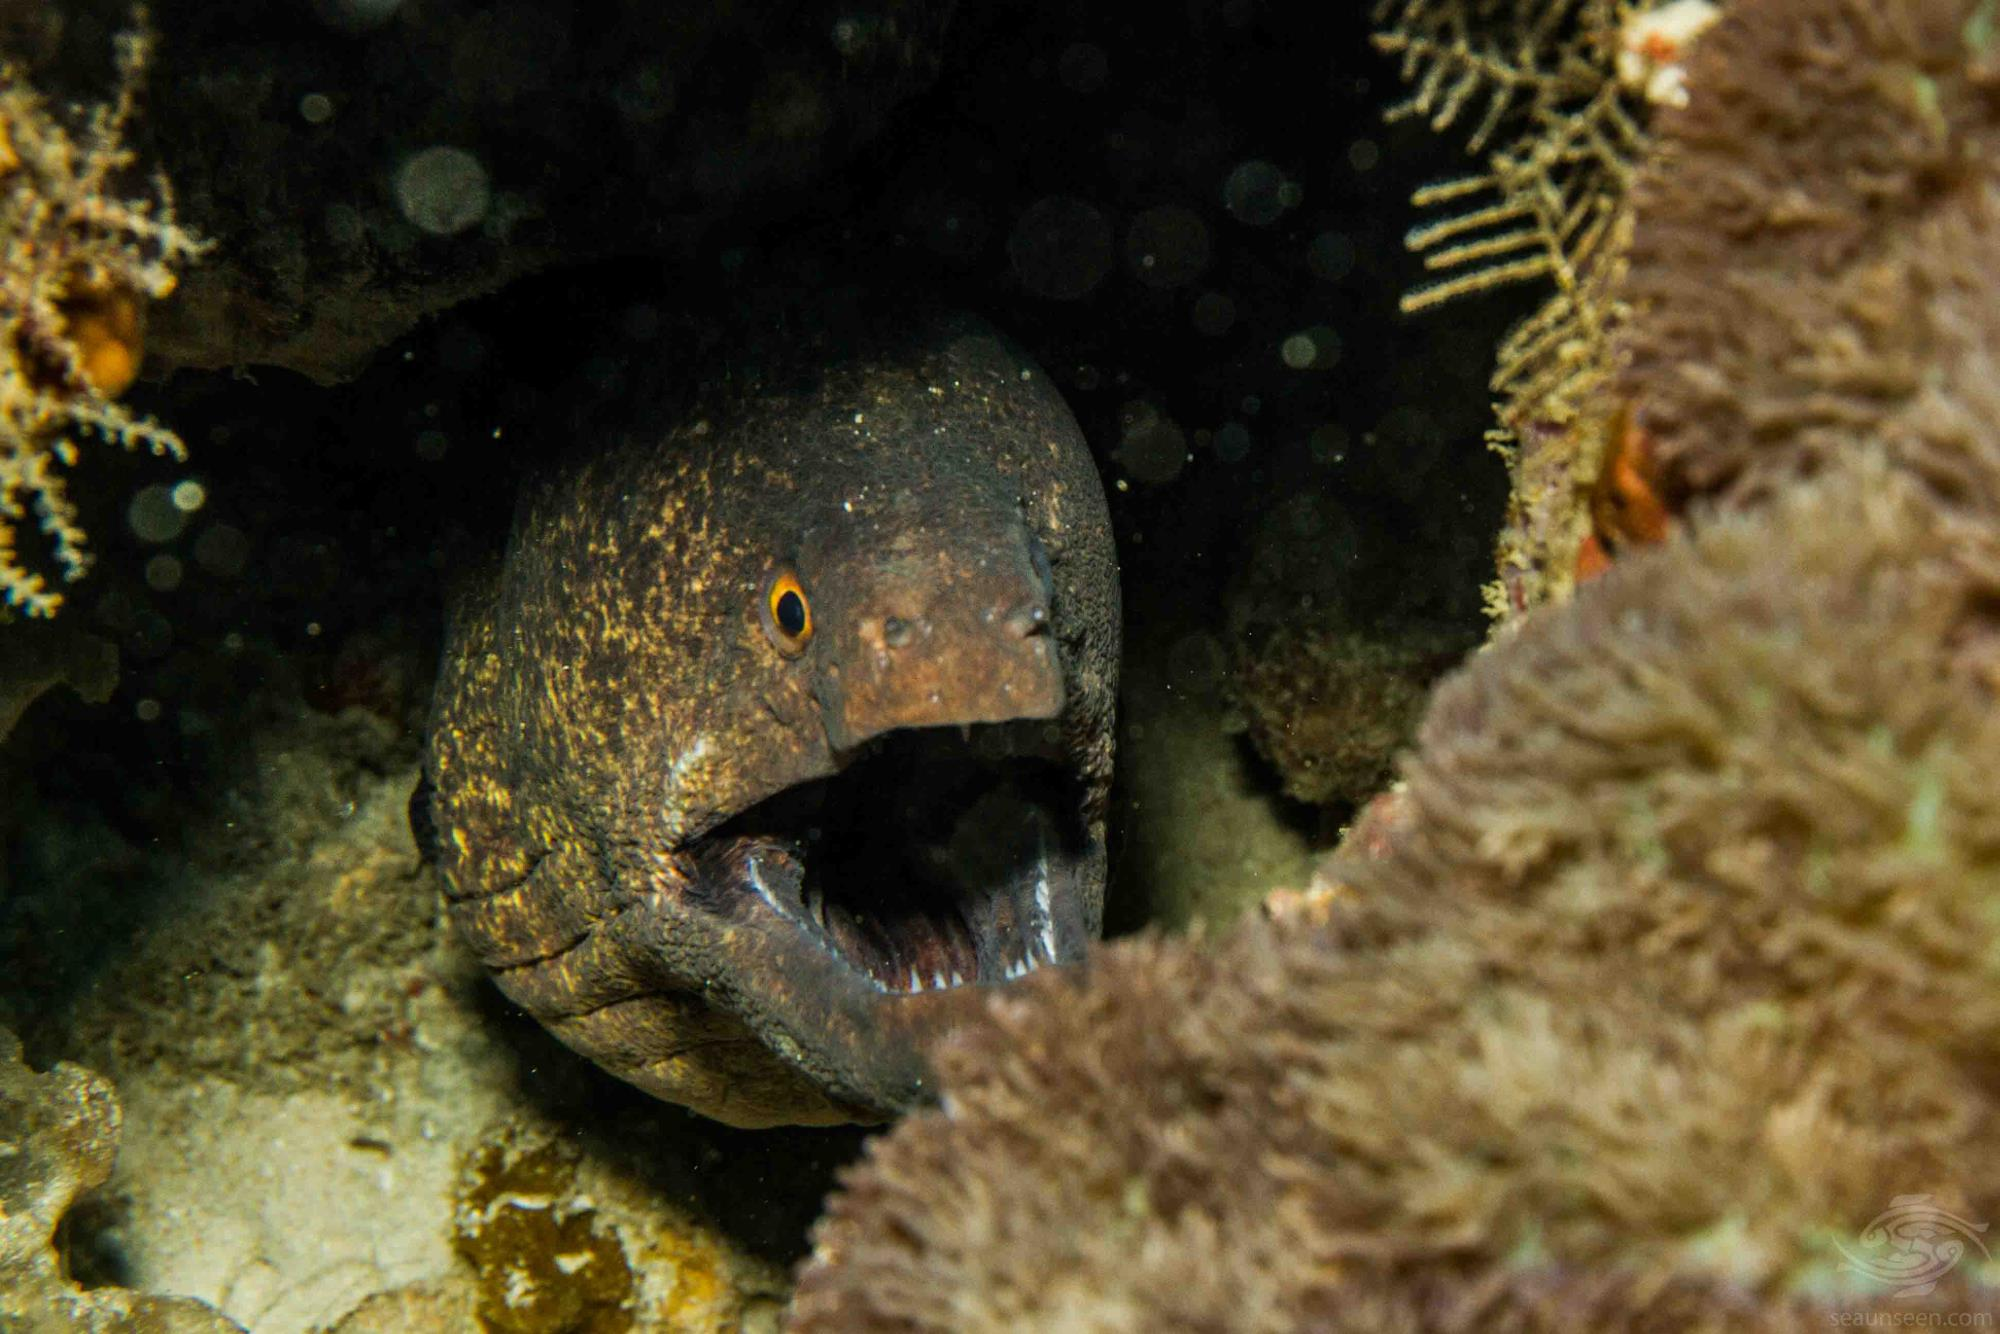 yellow-edged moray eel (Gymnothorax flavimarginatus)